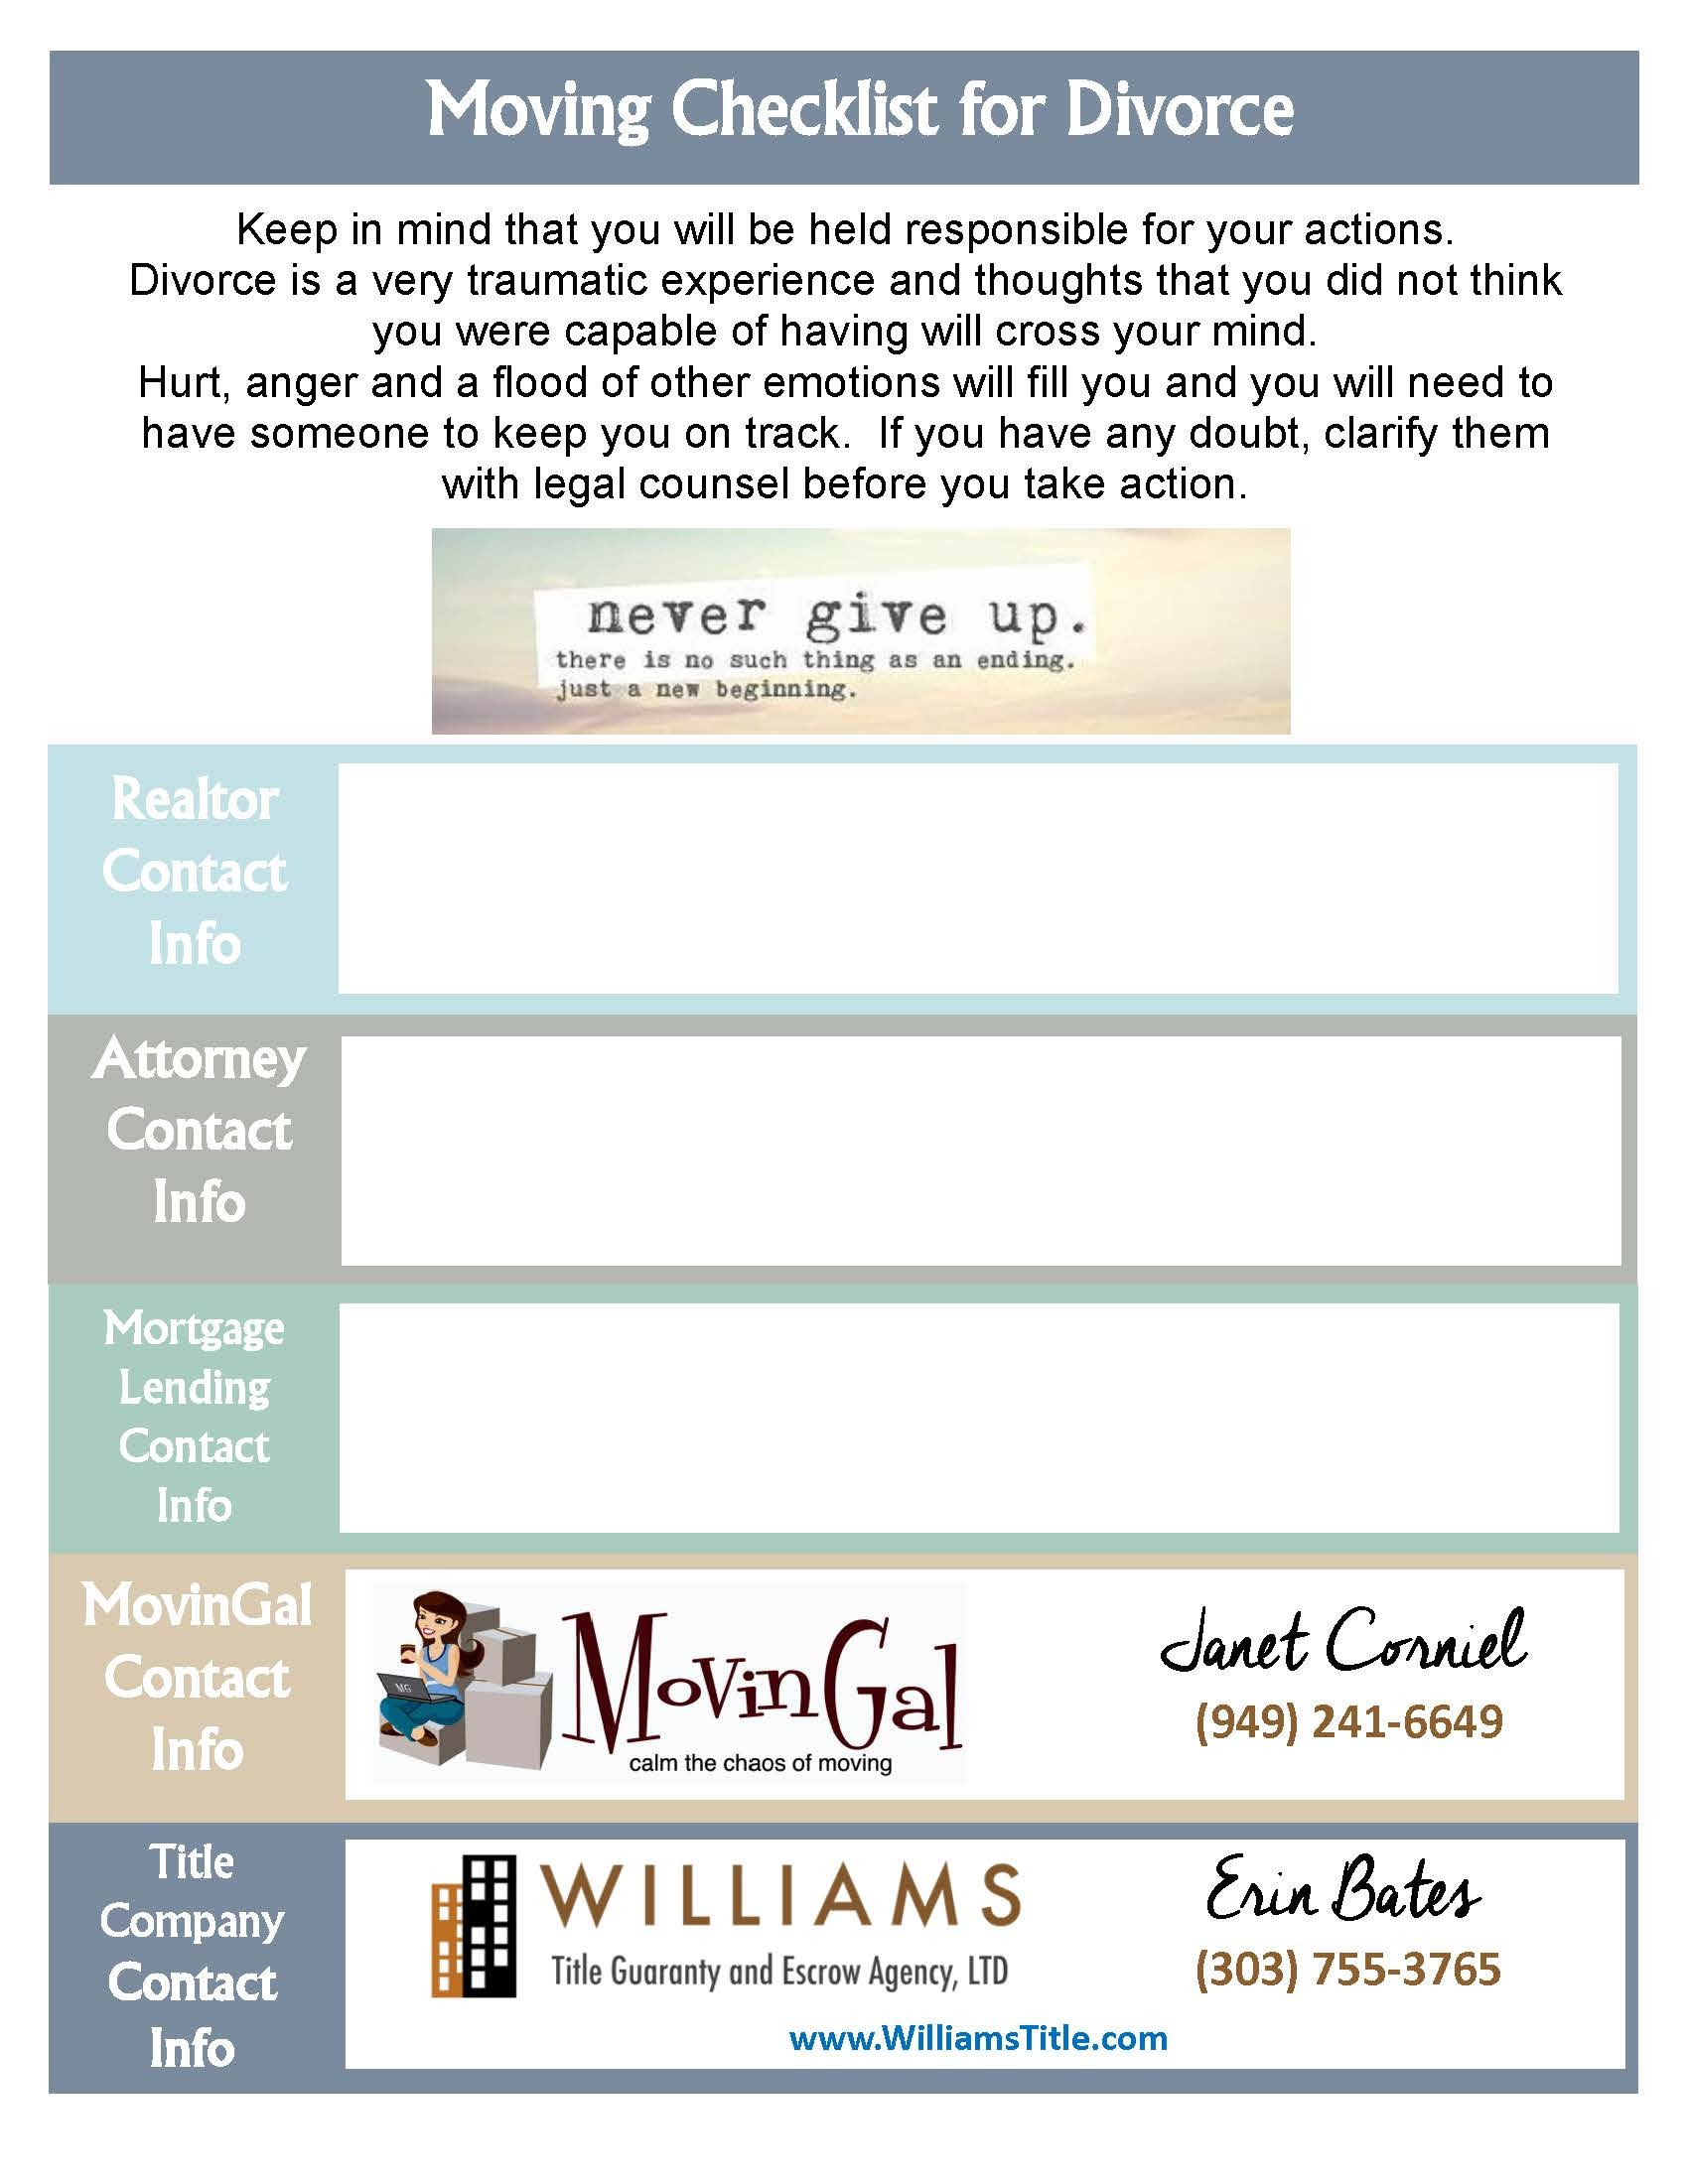 Williams Title Moving Checklist For Divorce Printable